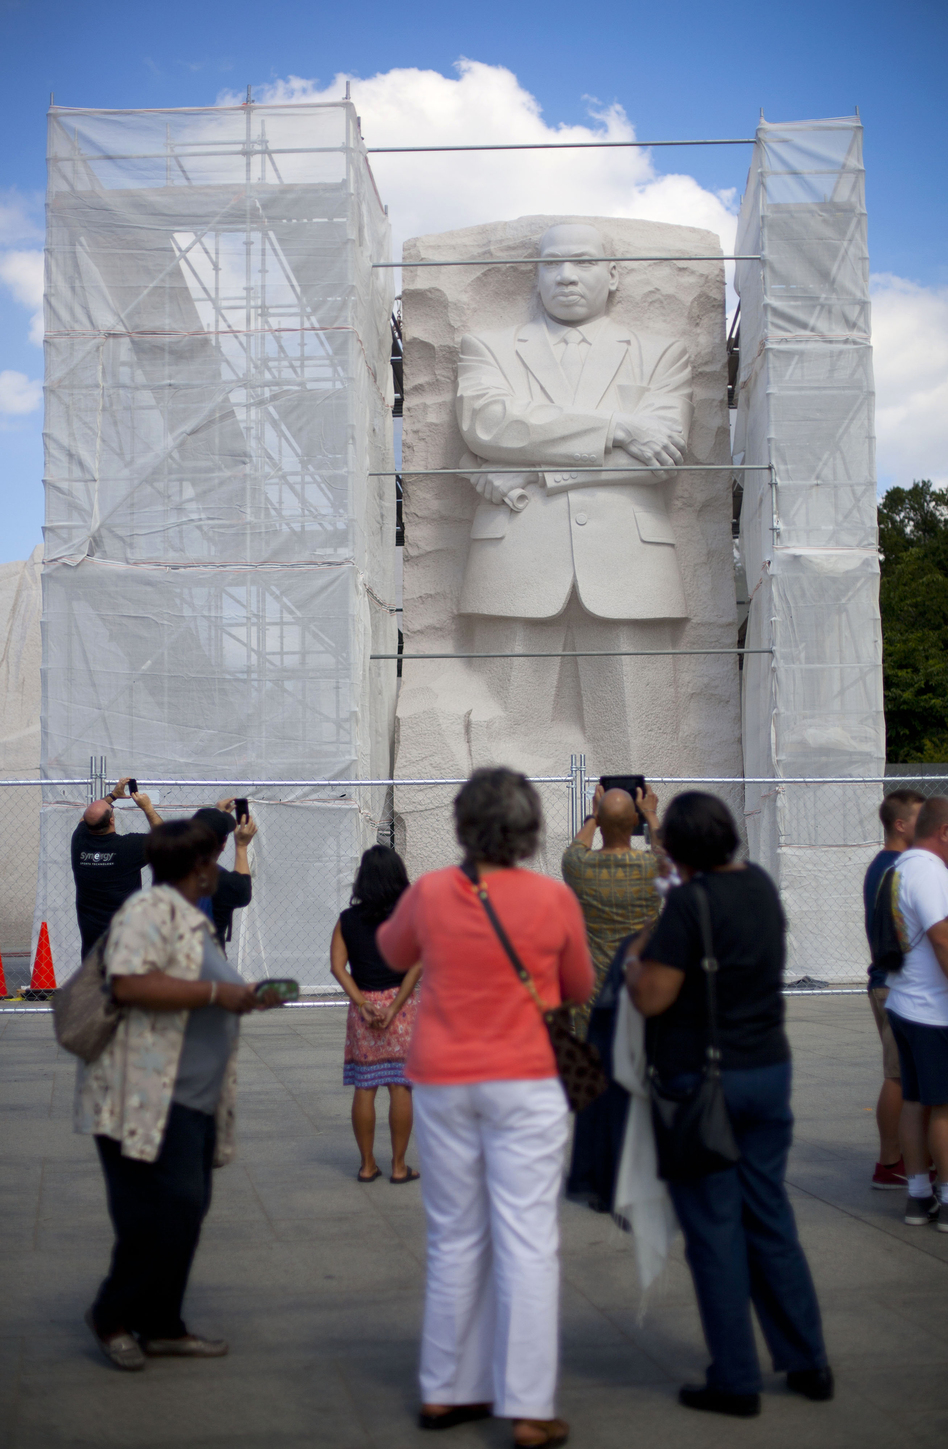 <strong>Under Construction:</strong> A recent survey of Americans found that fewer than half believe the U.S. has made substantial progress toward racial equality. Here, the Martin Luther King Jr. Memorial in Washington, D.C., is boxed in by scaffolding as work is done on it. (Pablo Martinez Monsivais/AP)